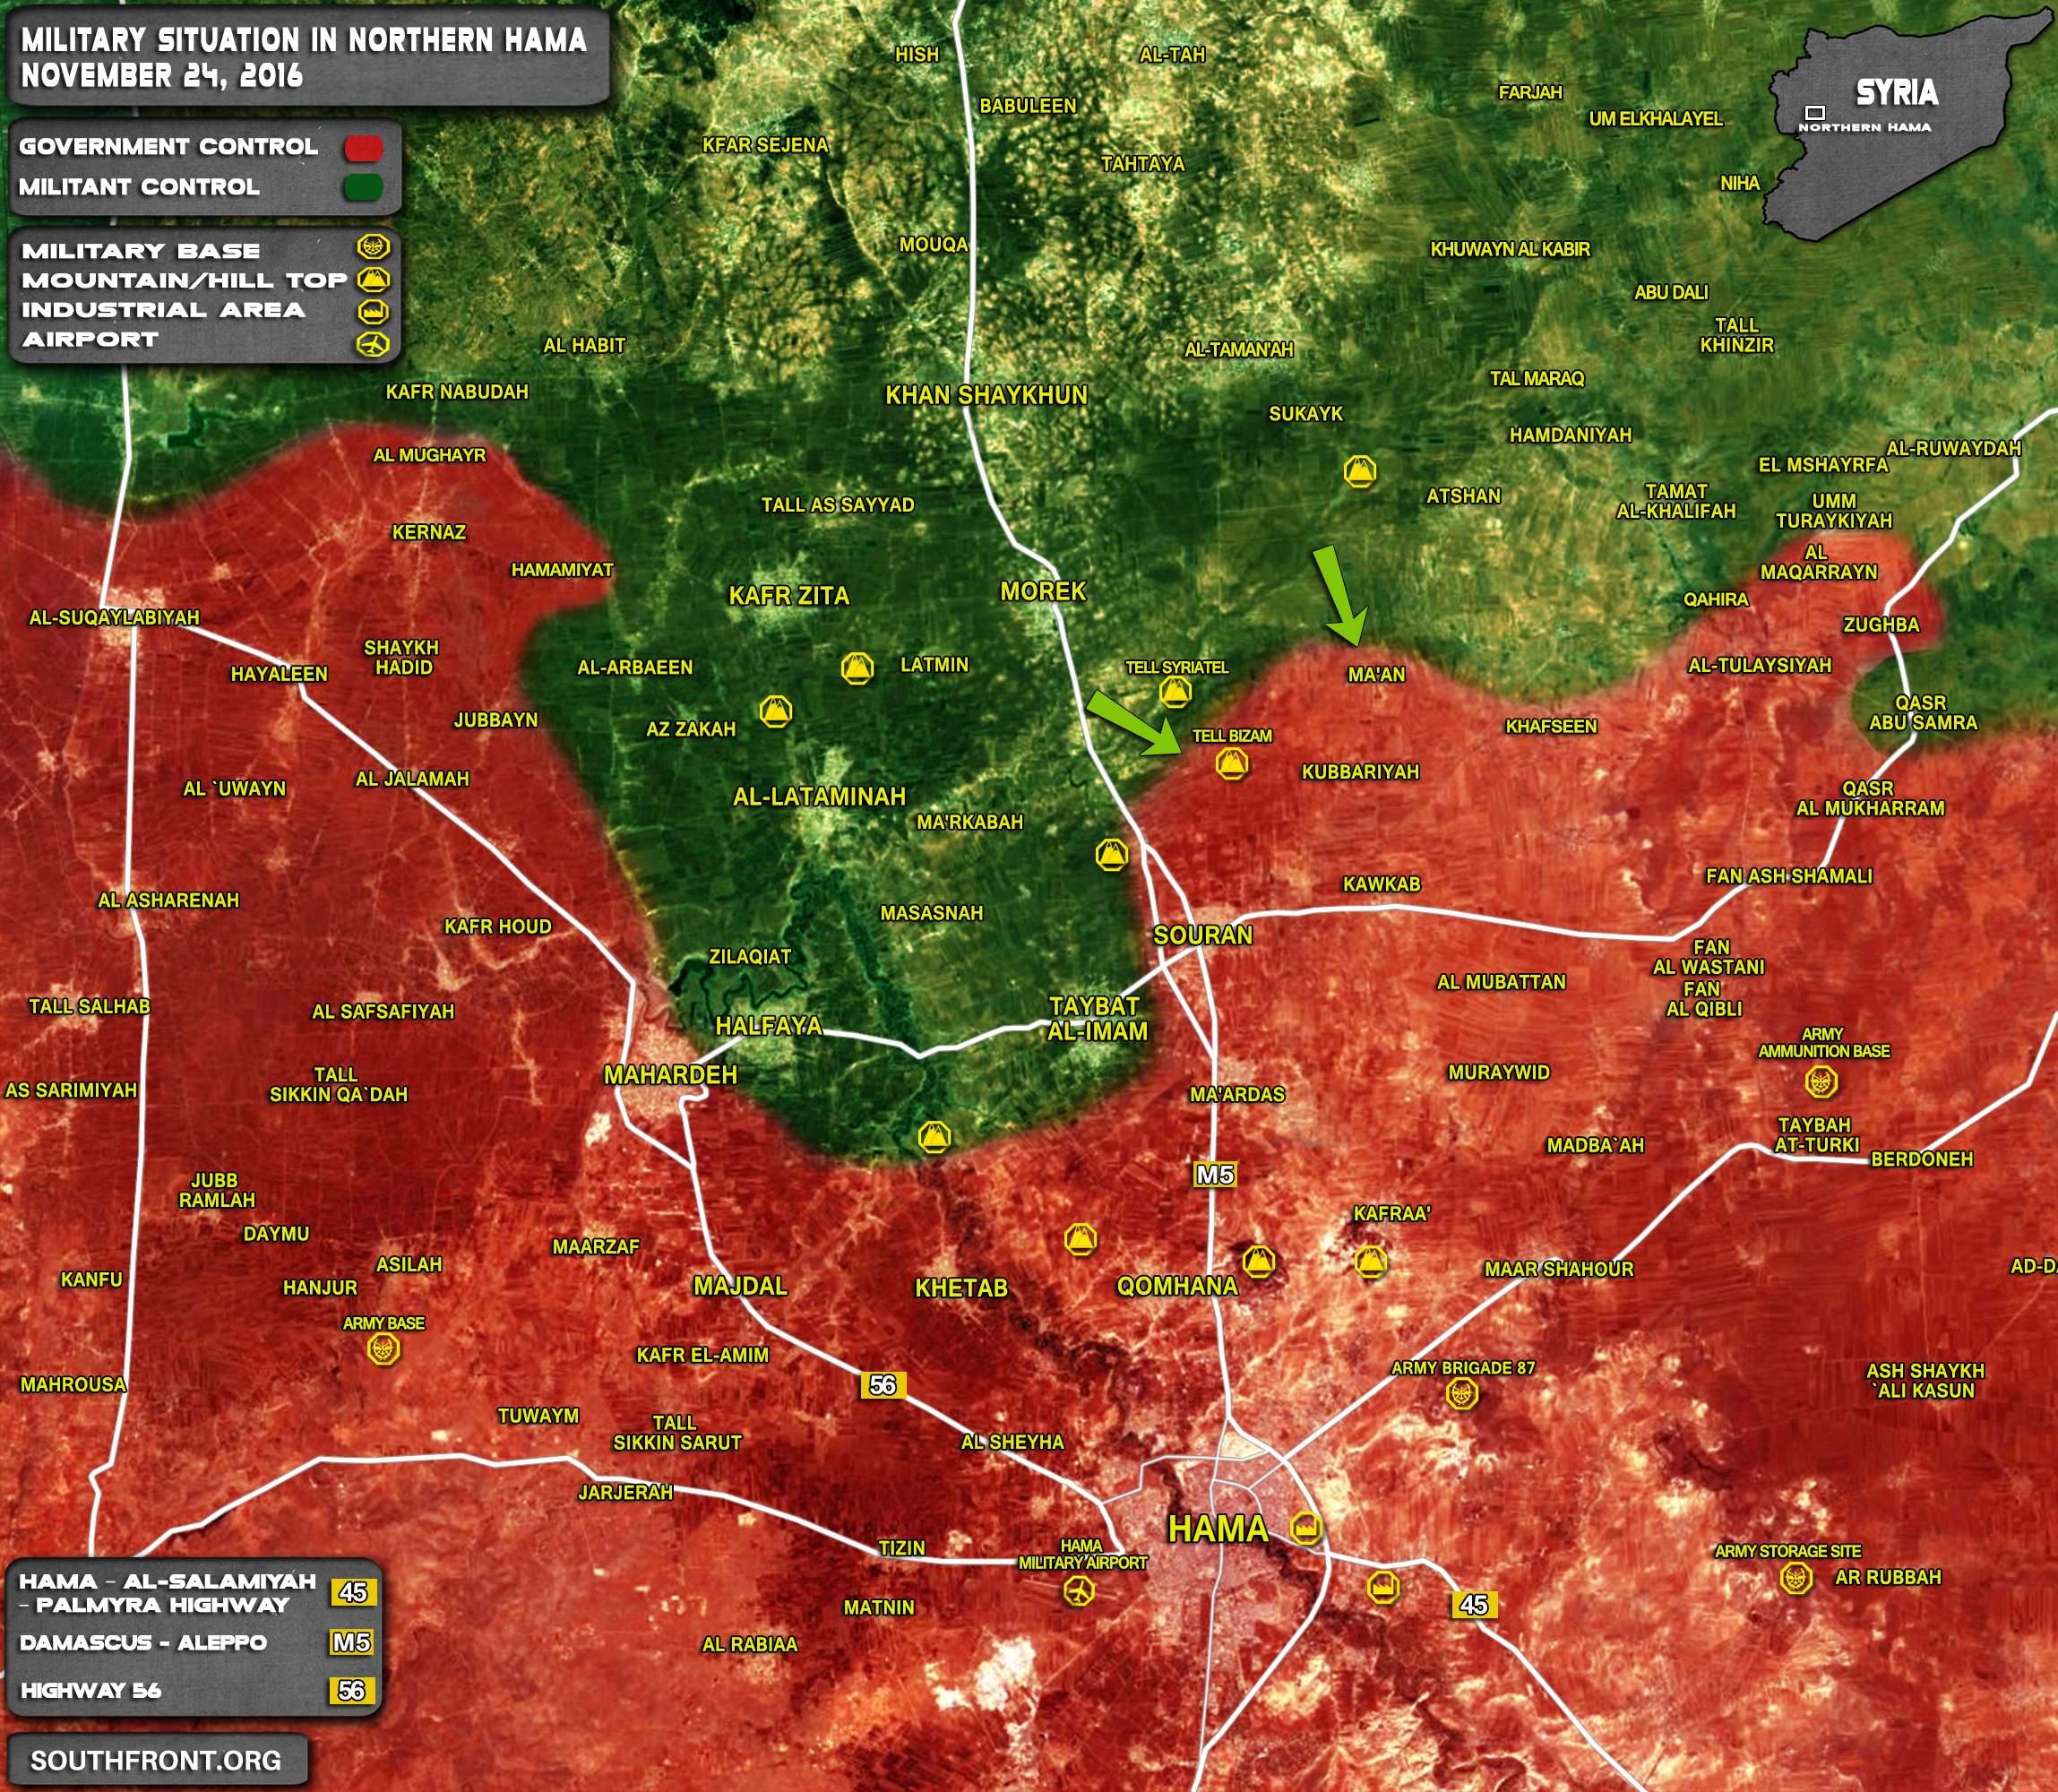 Syrian Army Foils Militants Offensive, Launches Counter Attack in Northern Hama